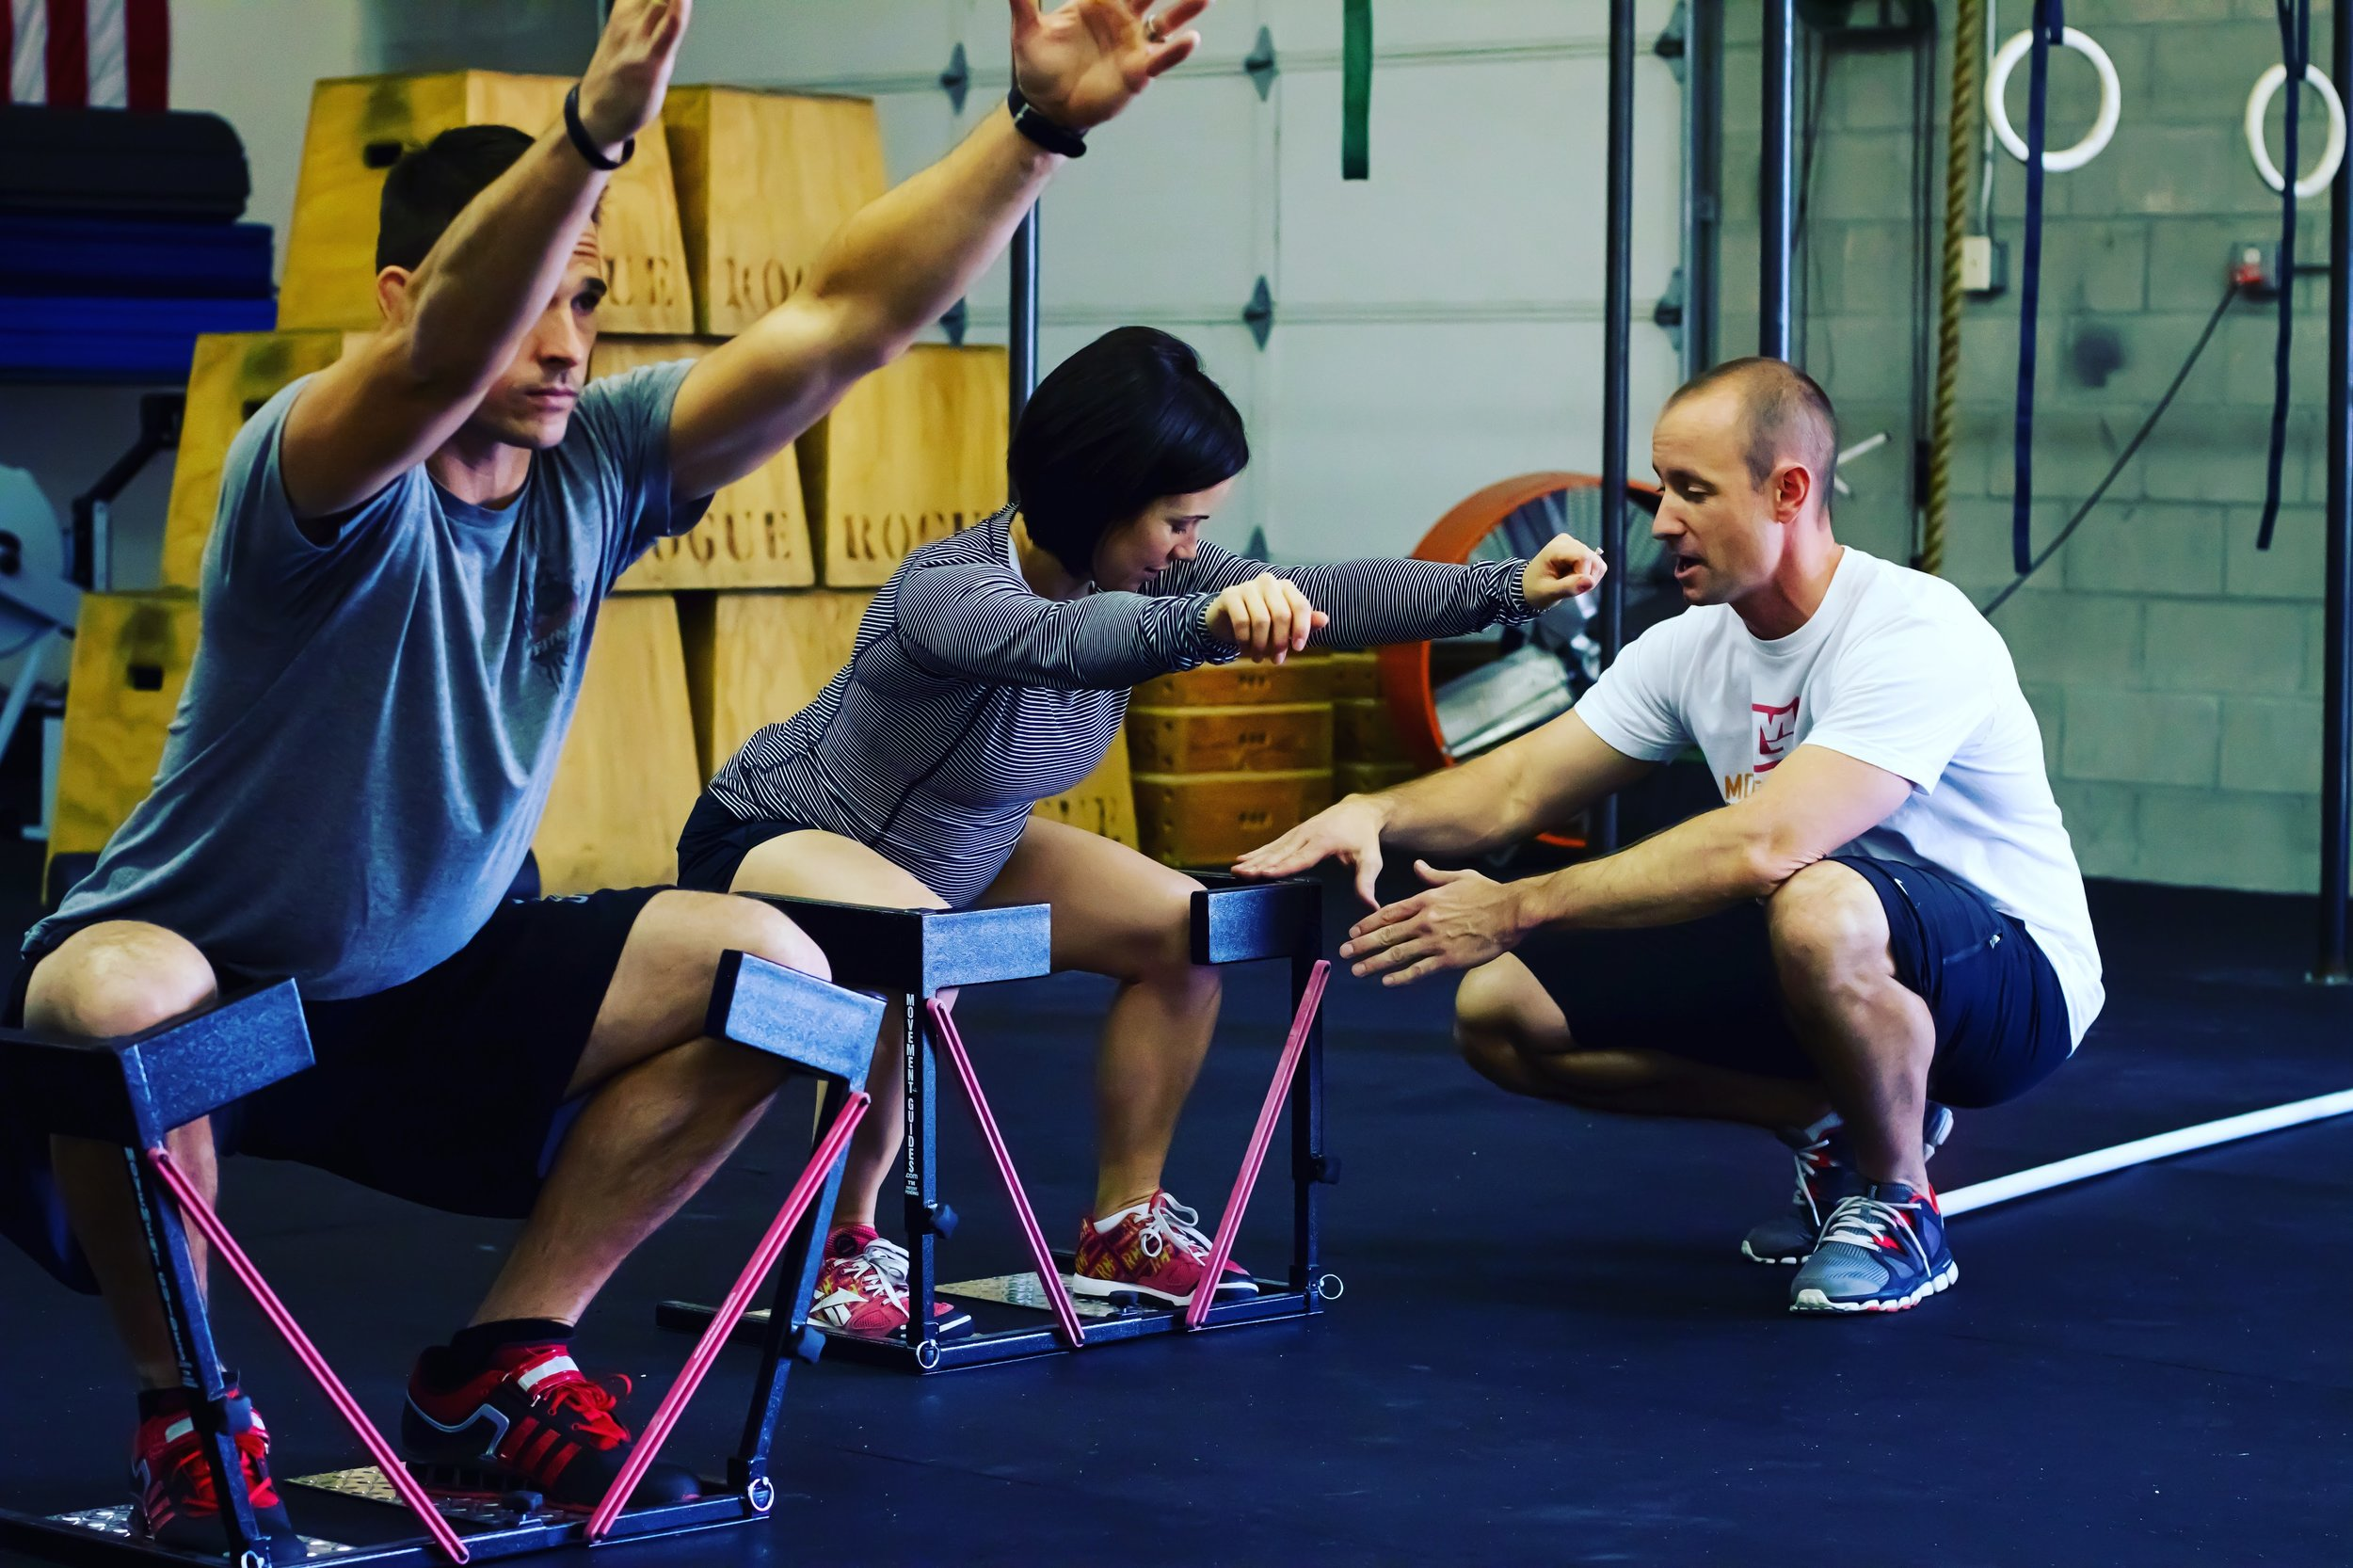 Instructing squat form in the patented SquatGuide from Movement Guides